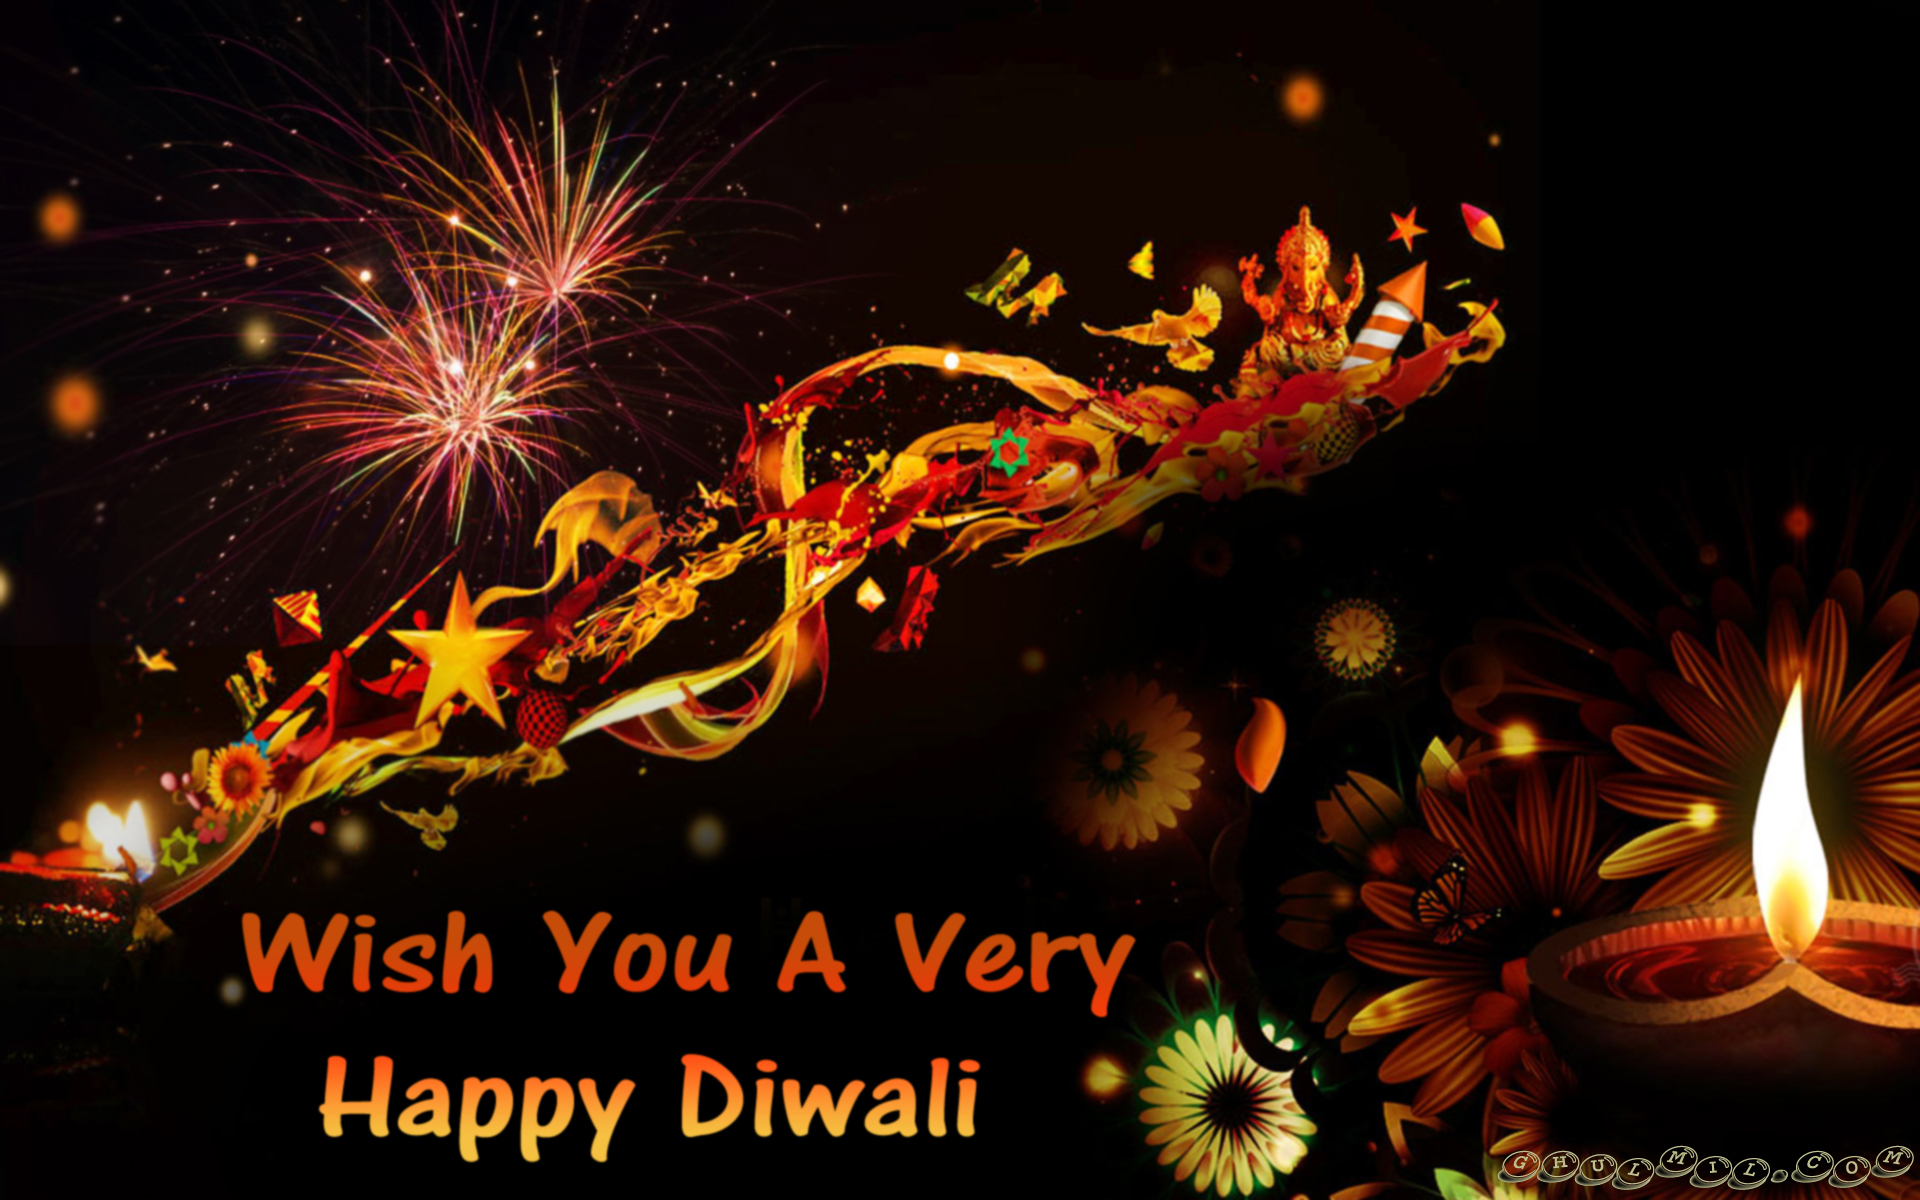 Diwali Images Of The Festival Wallpapers Free Download